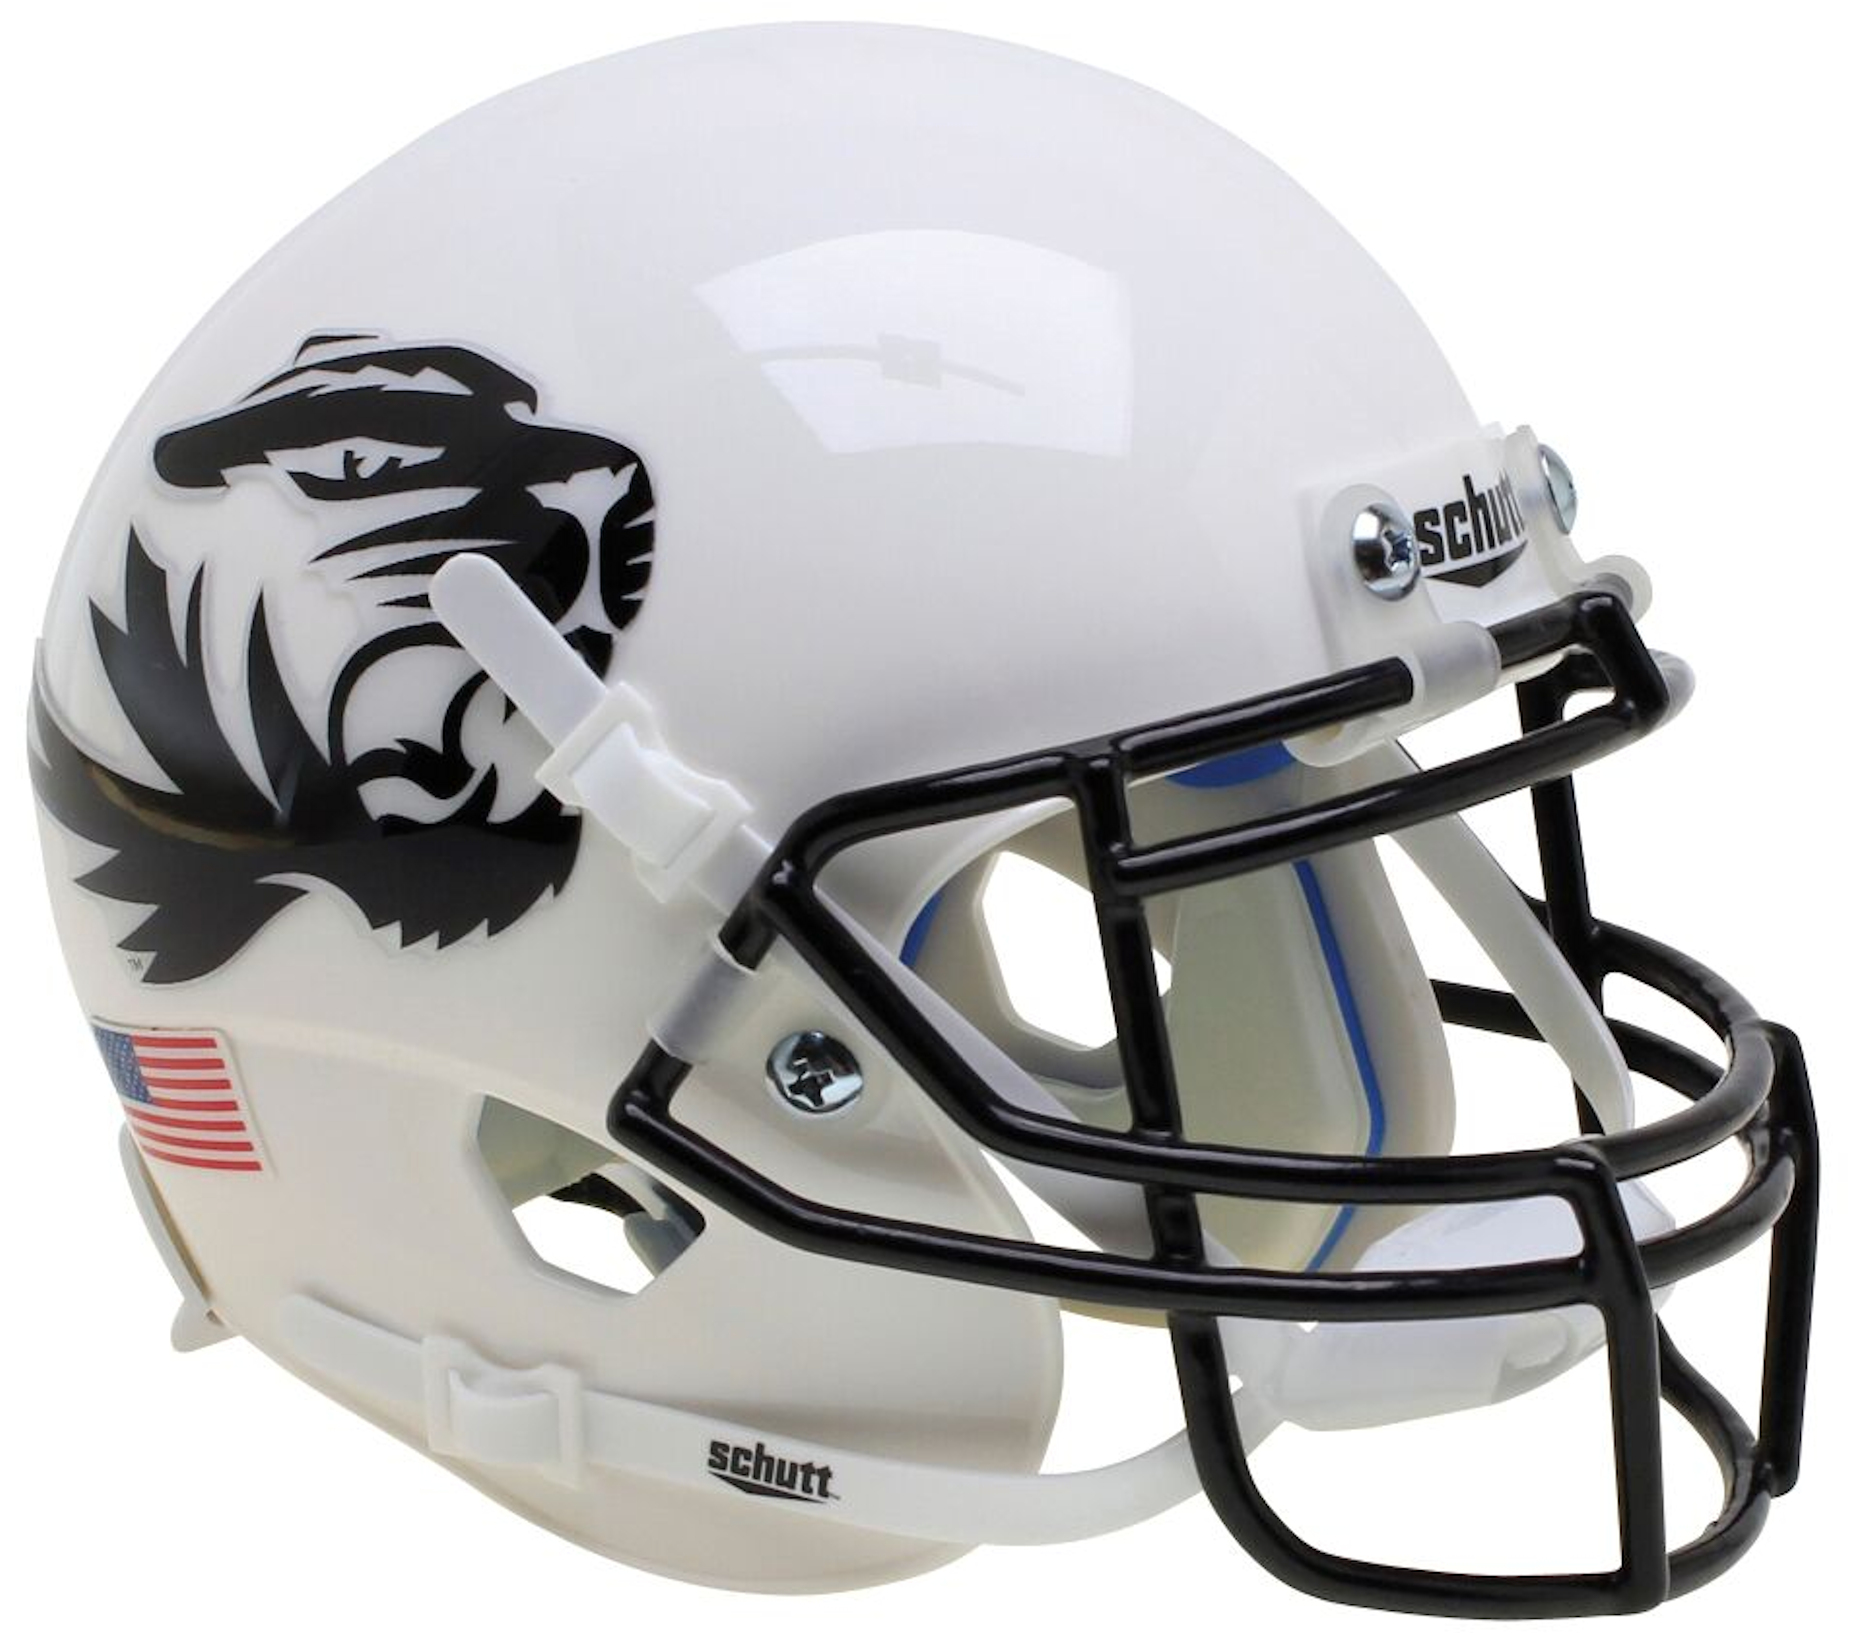 Missouri Tigers Authentic College XP Football Helmet Schutt B White Tiger B PSM-Powers Sports Memorabilia